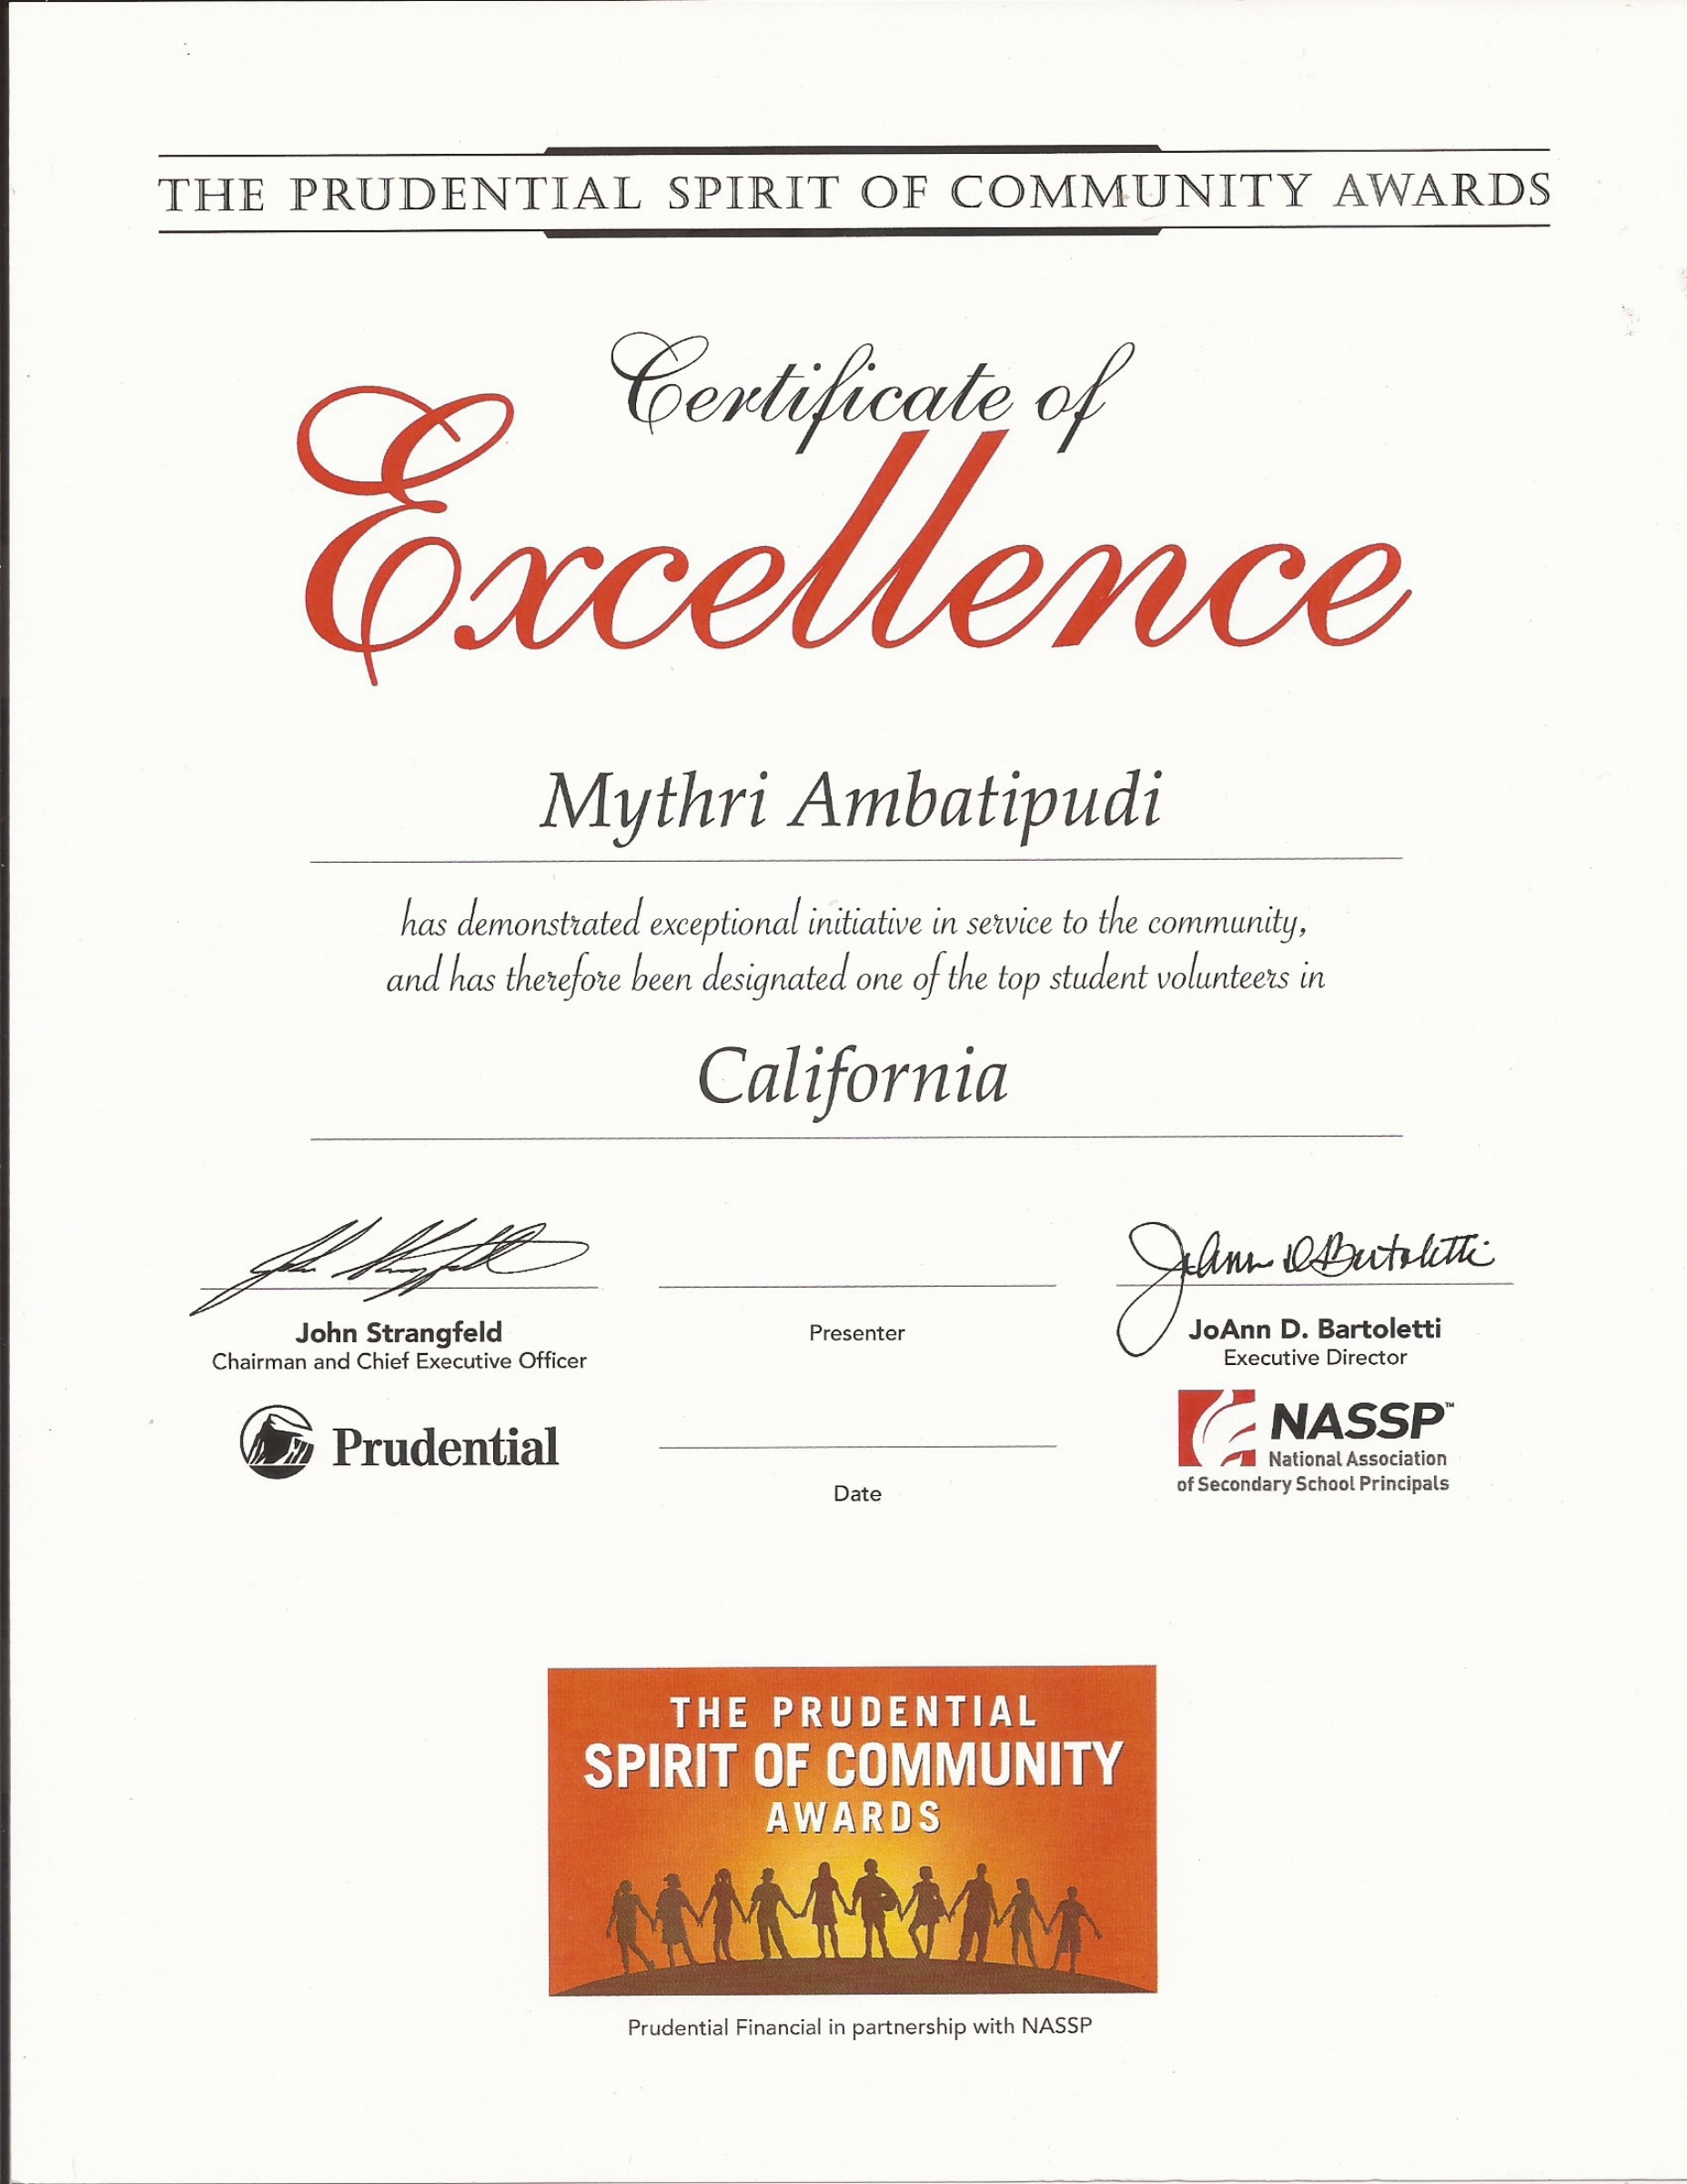 The Prudential Spirit of Community Awards - Mythri was awarded the Prudential Spirit of Community Certificate of Excellence along with a letter from the President of United States. This award honors outstanding community service by young Americans. Mythri's volunteer activities, on behalf of WoolyWarmth, were judged to be among the top 10% of all those considered in California in 2017.